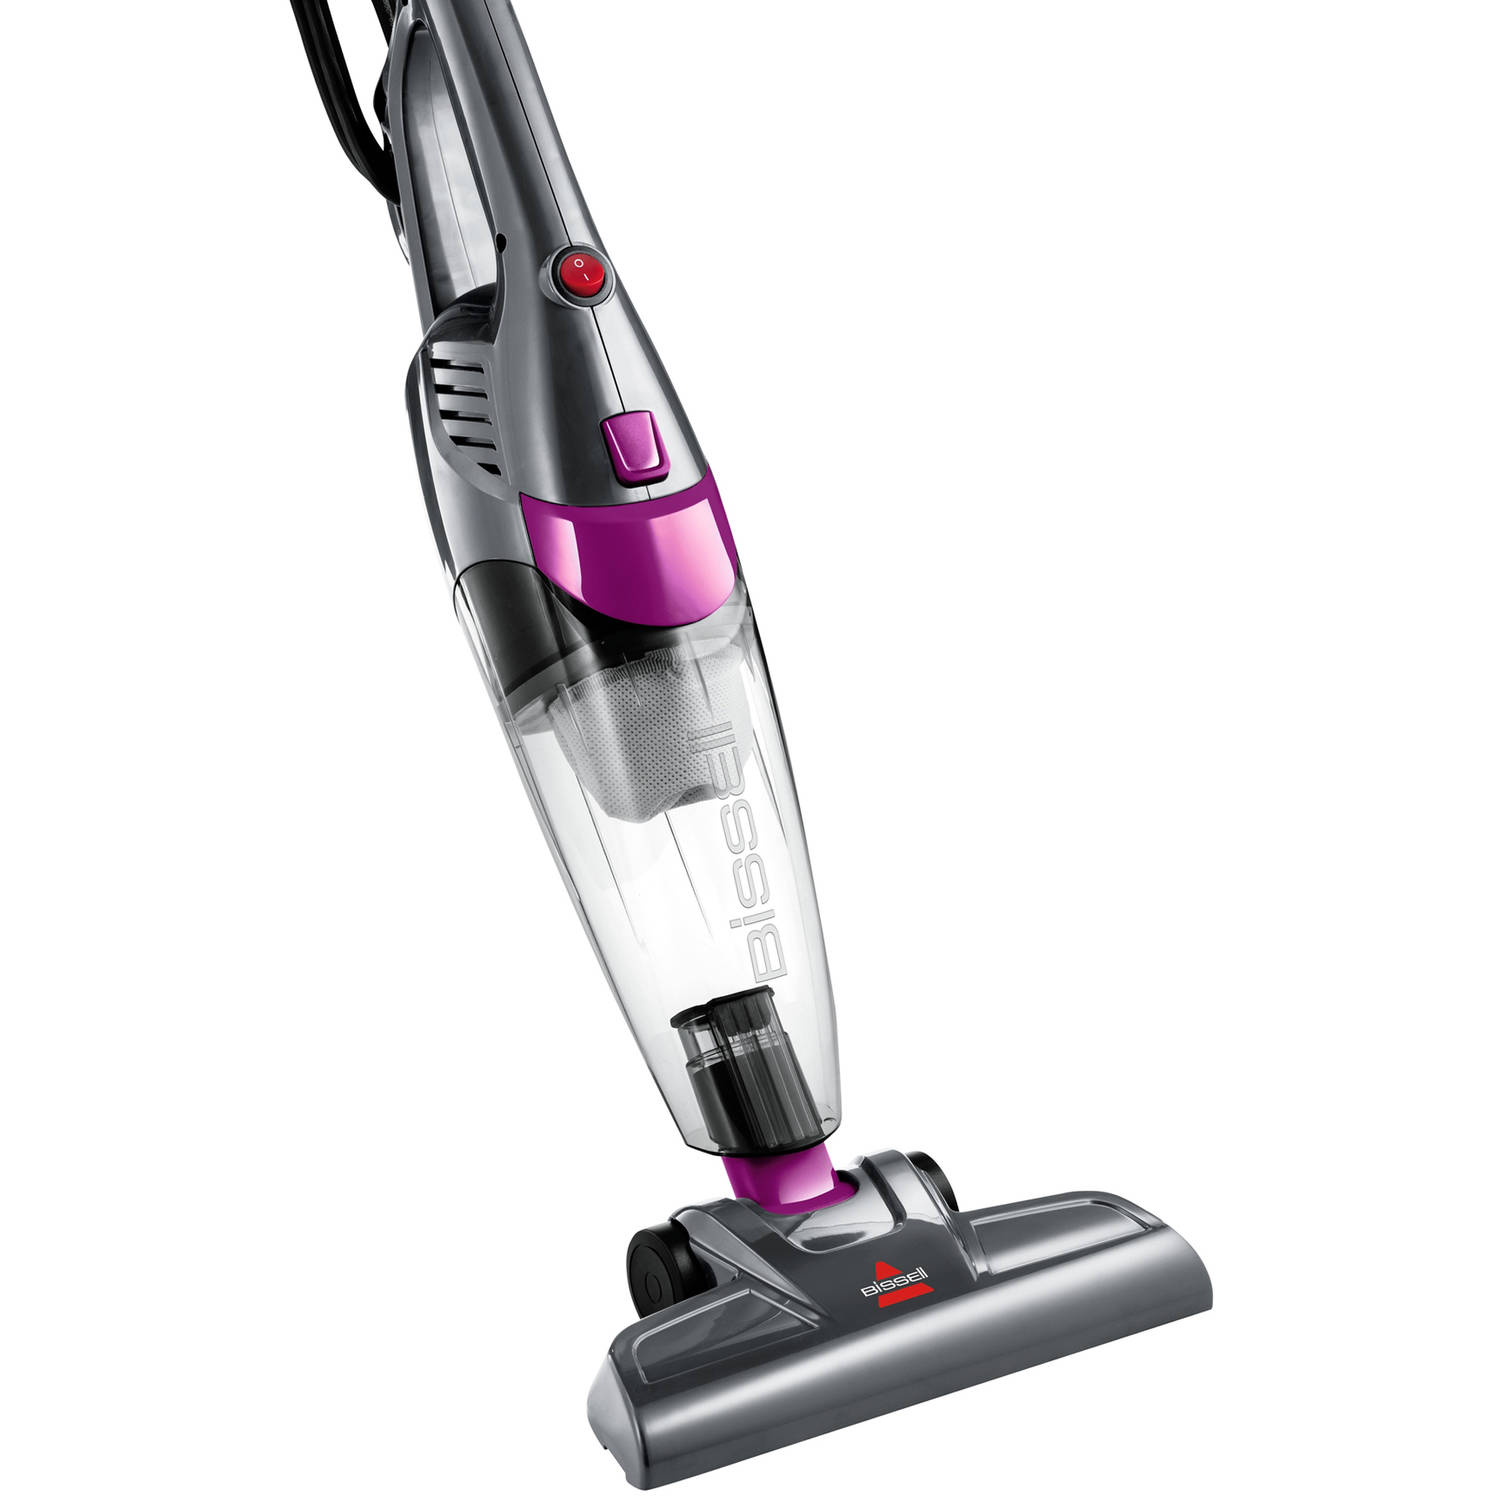 What is the best handheld vacuum cleaner reference com - What Is The Best Handheld Vacuum Cleaner Reference Com 10